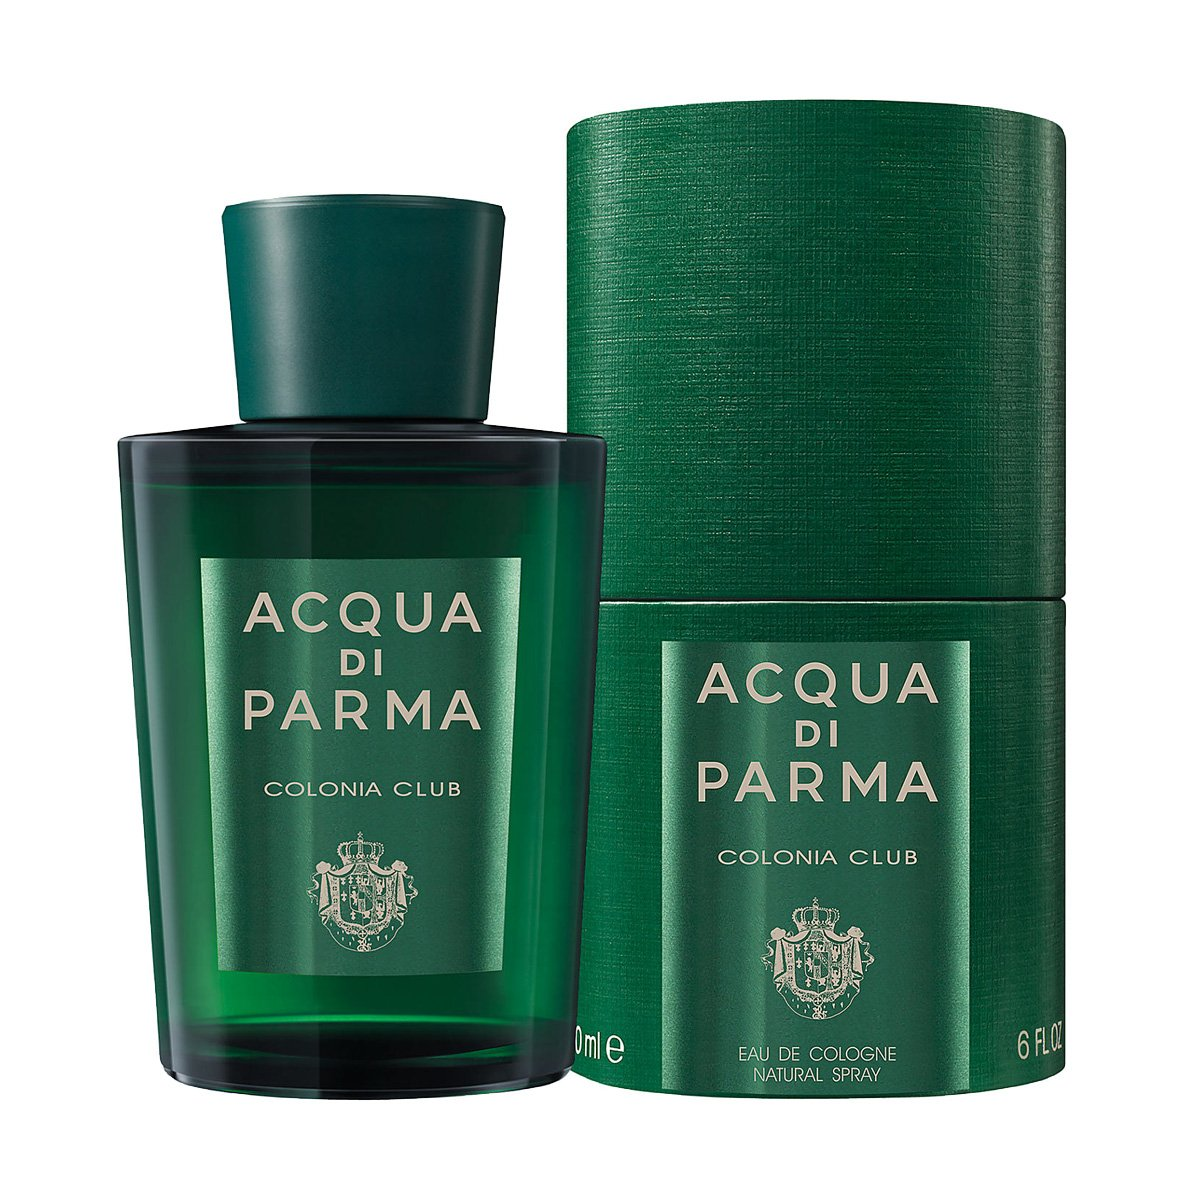 Acqua di Parma Colonia Club Тестер 100ml edc